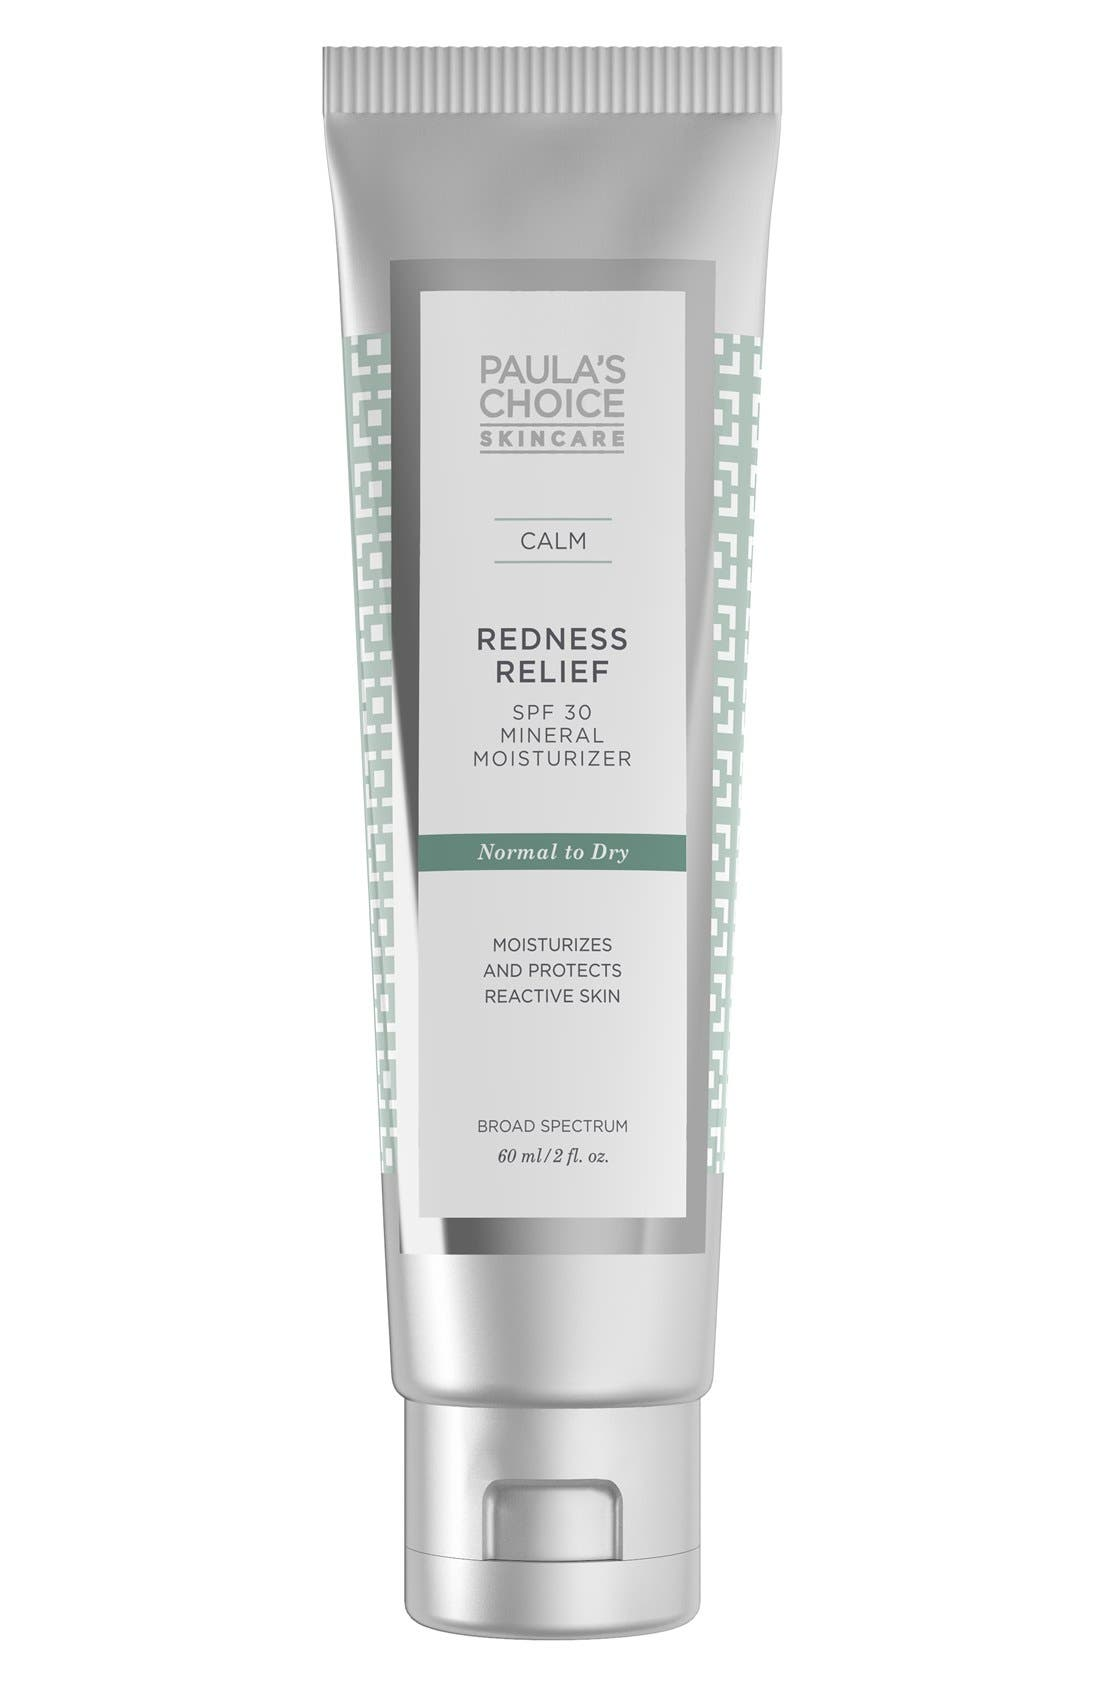 Paula's Choice Calm Redness Relief Mineral Moisturizing Lotion SPF 30